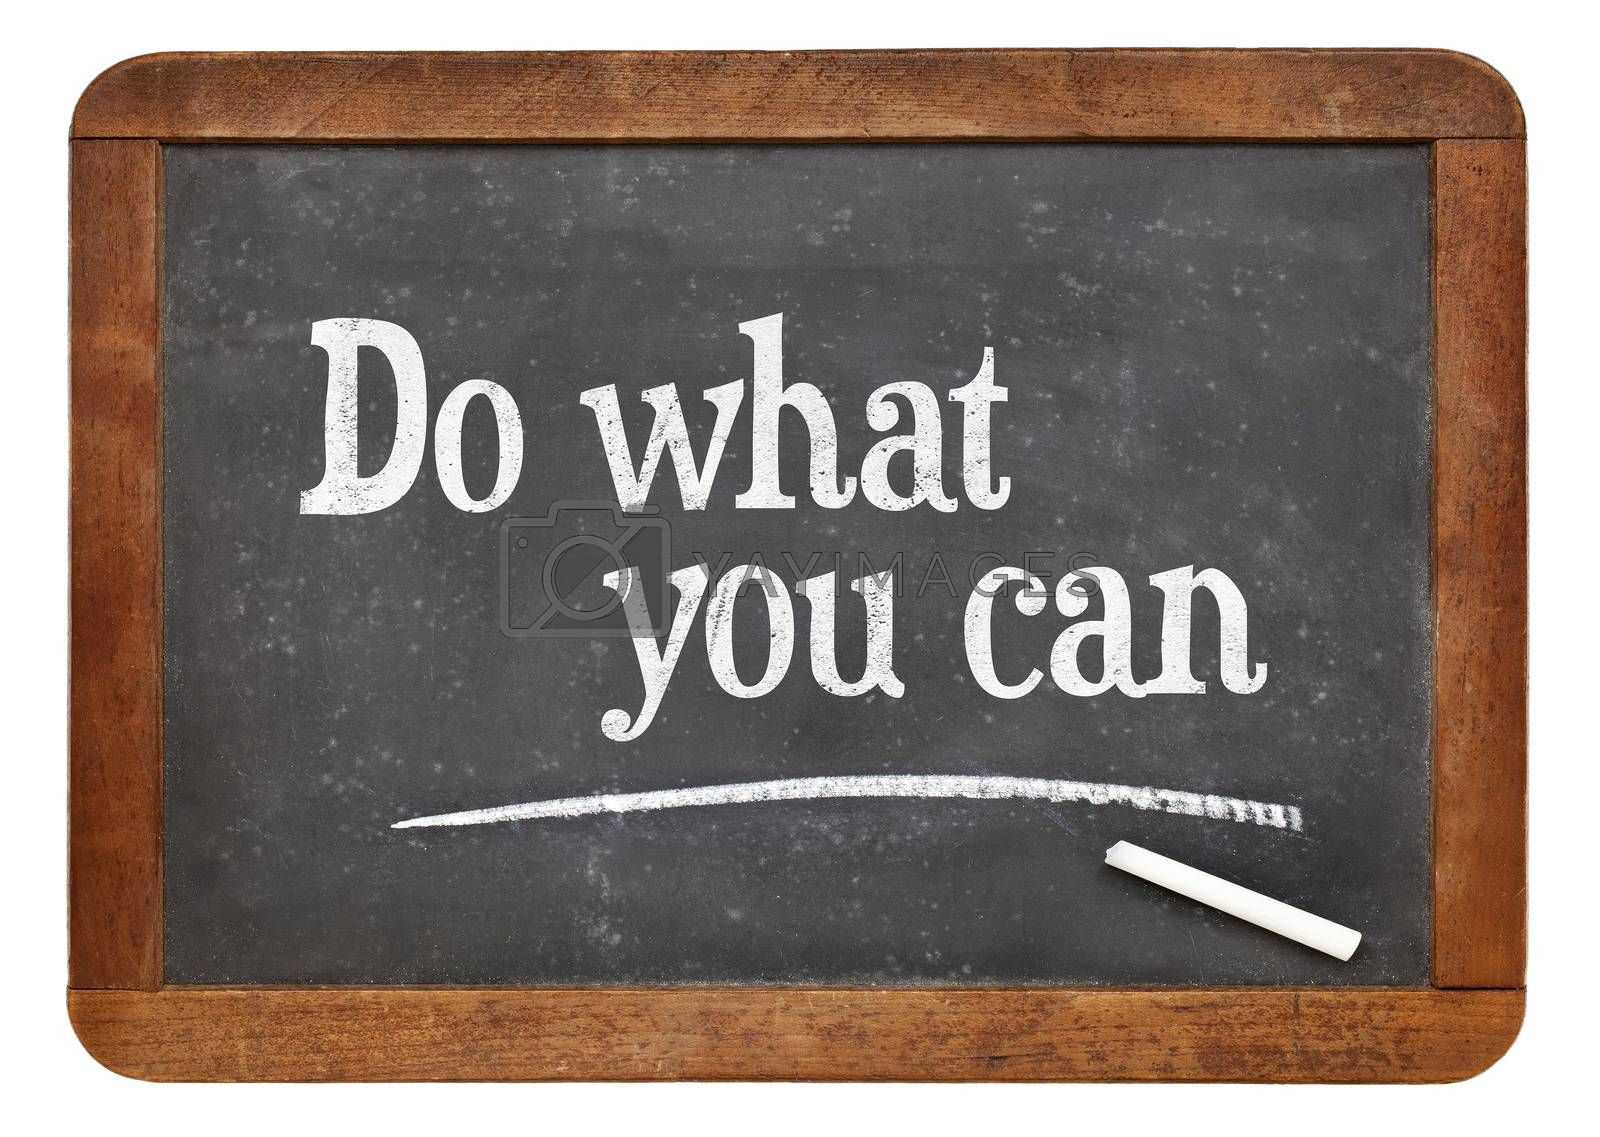 Do what you can - motivational text in white chalk on a vintage slate blackboard